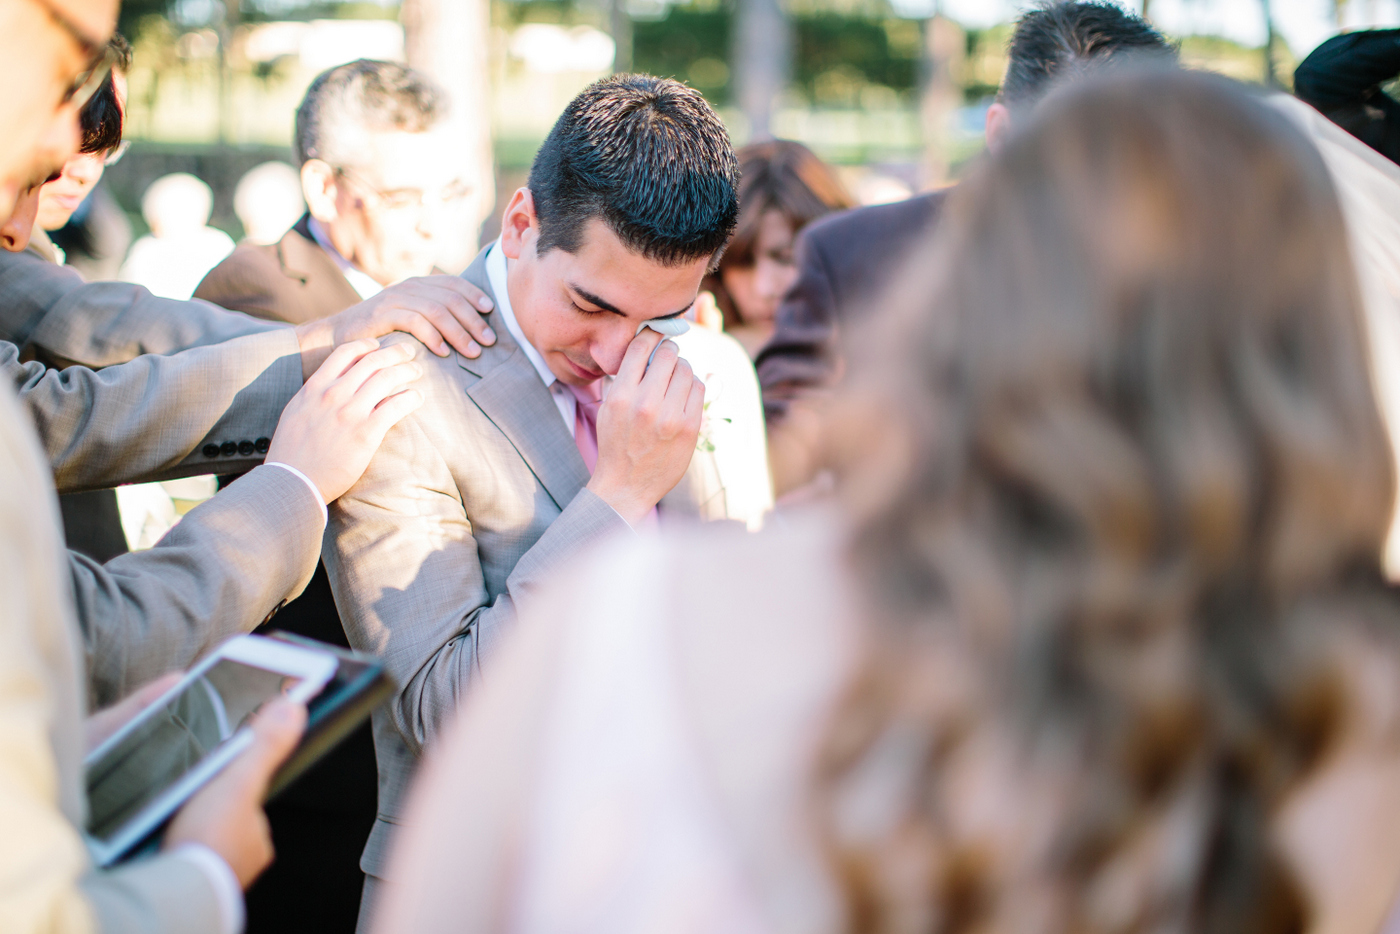 wedding-photographer-best-emotions-groom